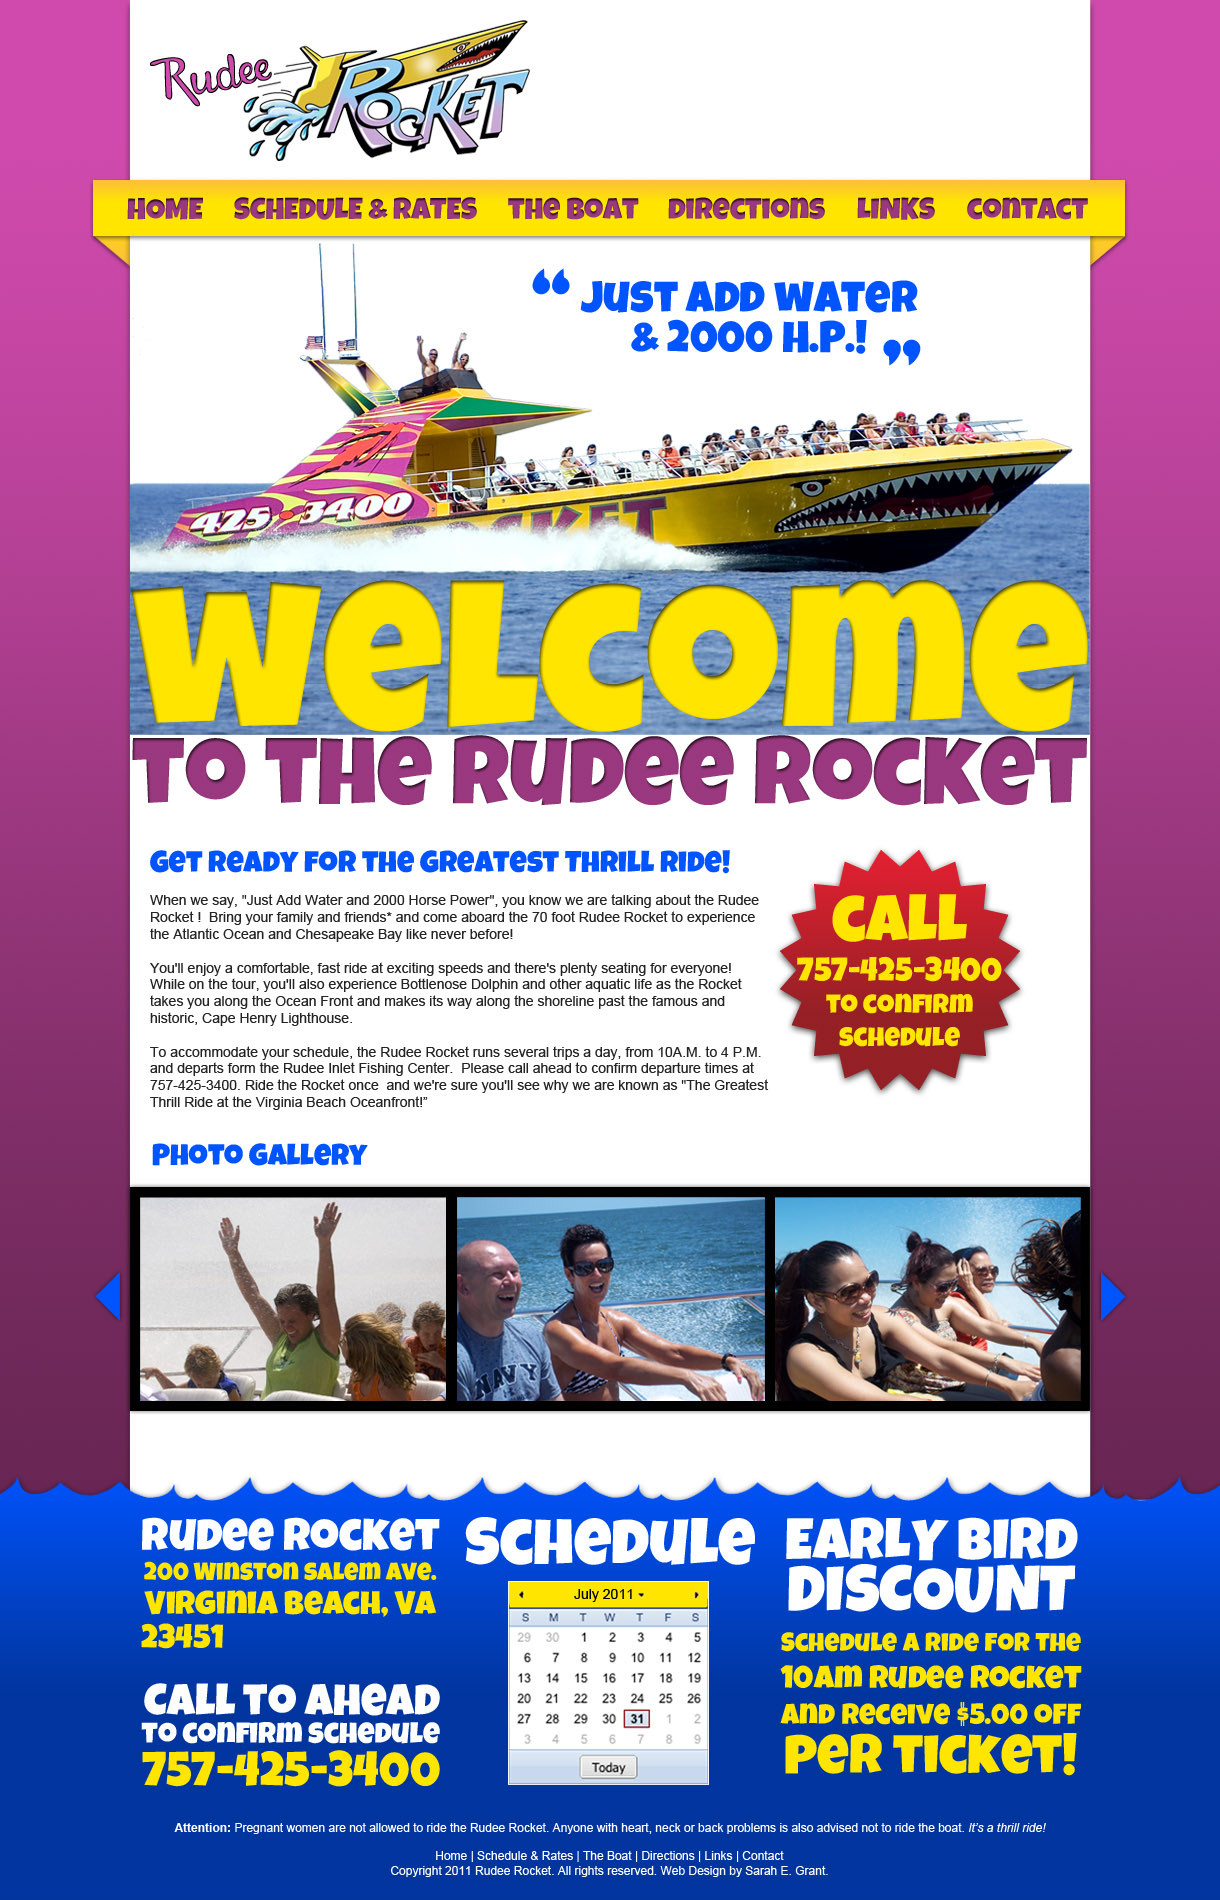 rudee-rocket-home-2C.jpg